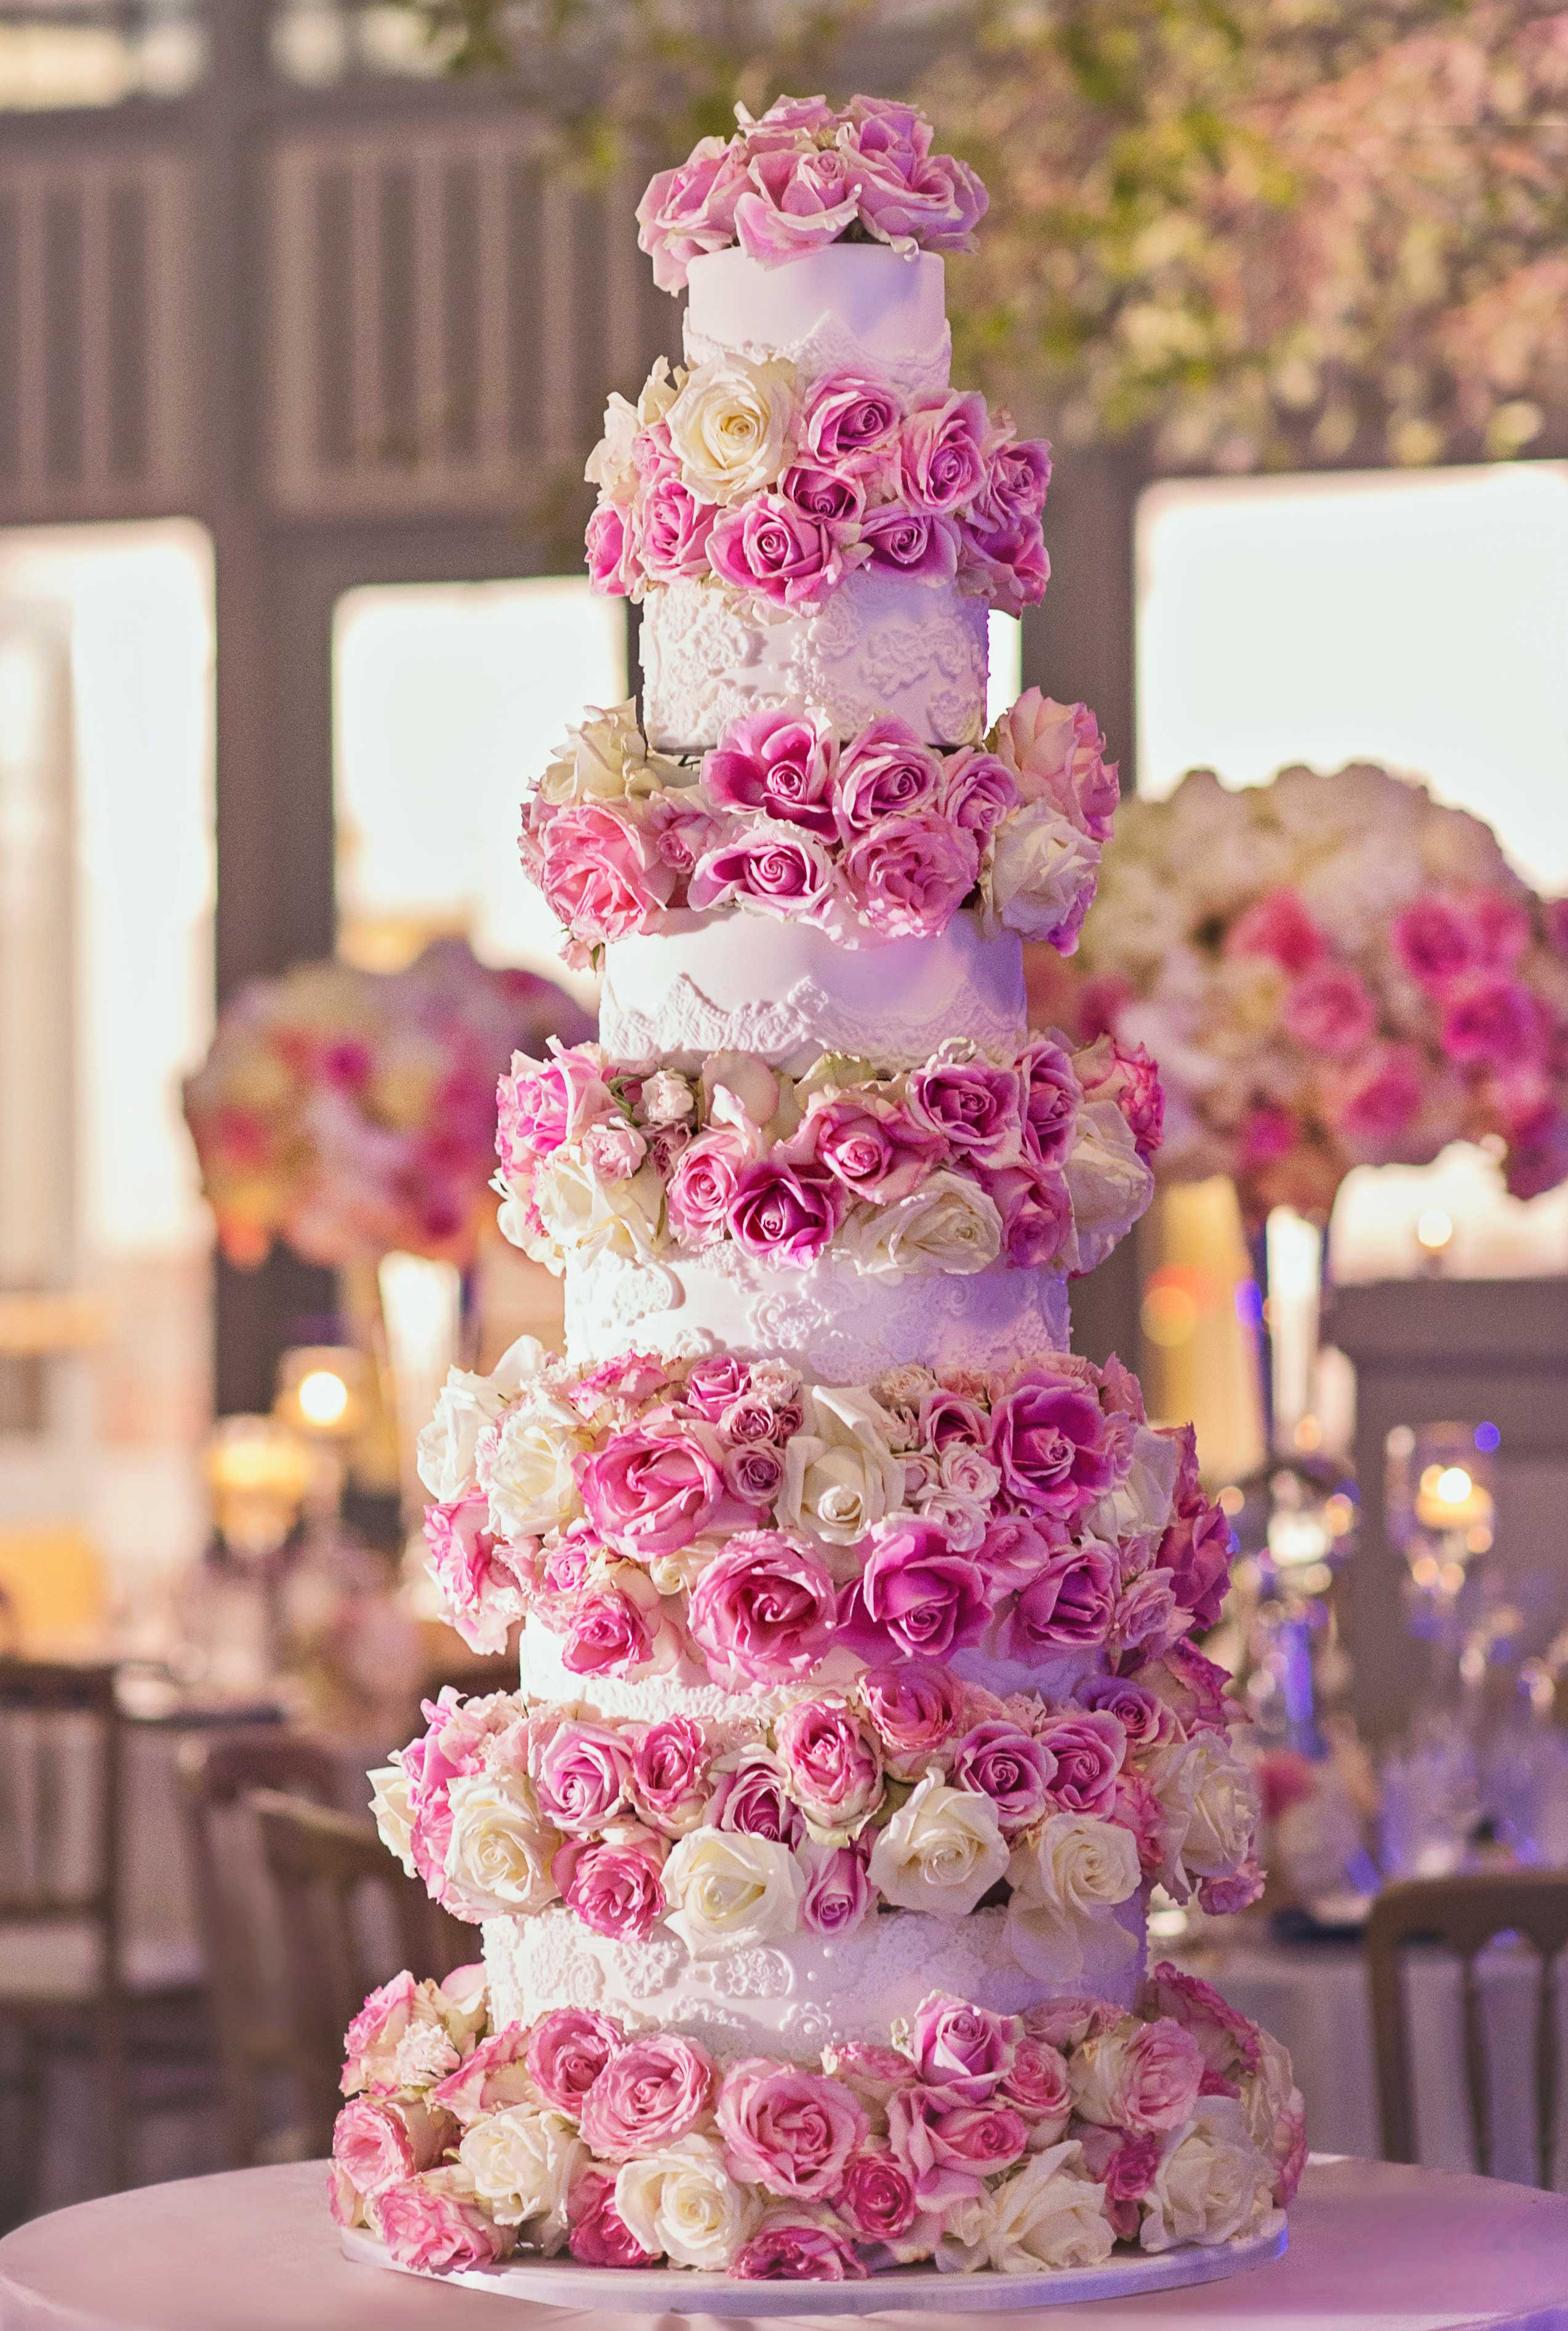 Tall opulent wedding cake with fresh flowers pink and white